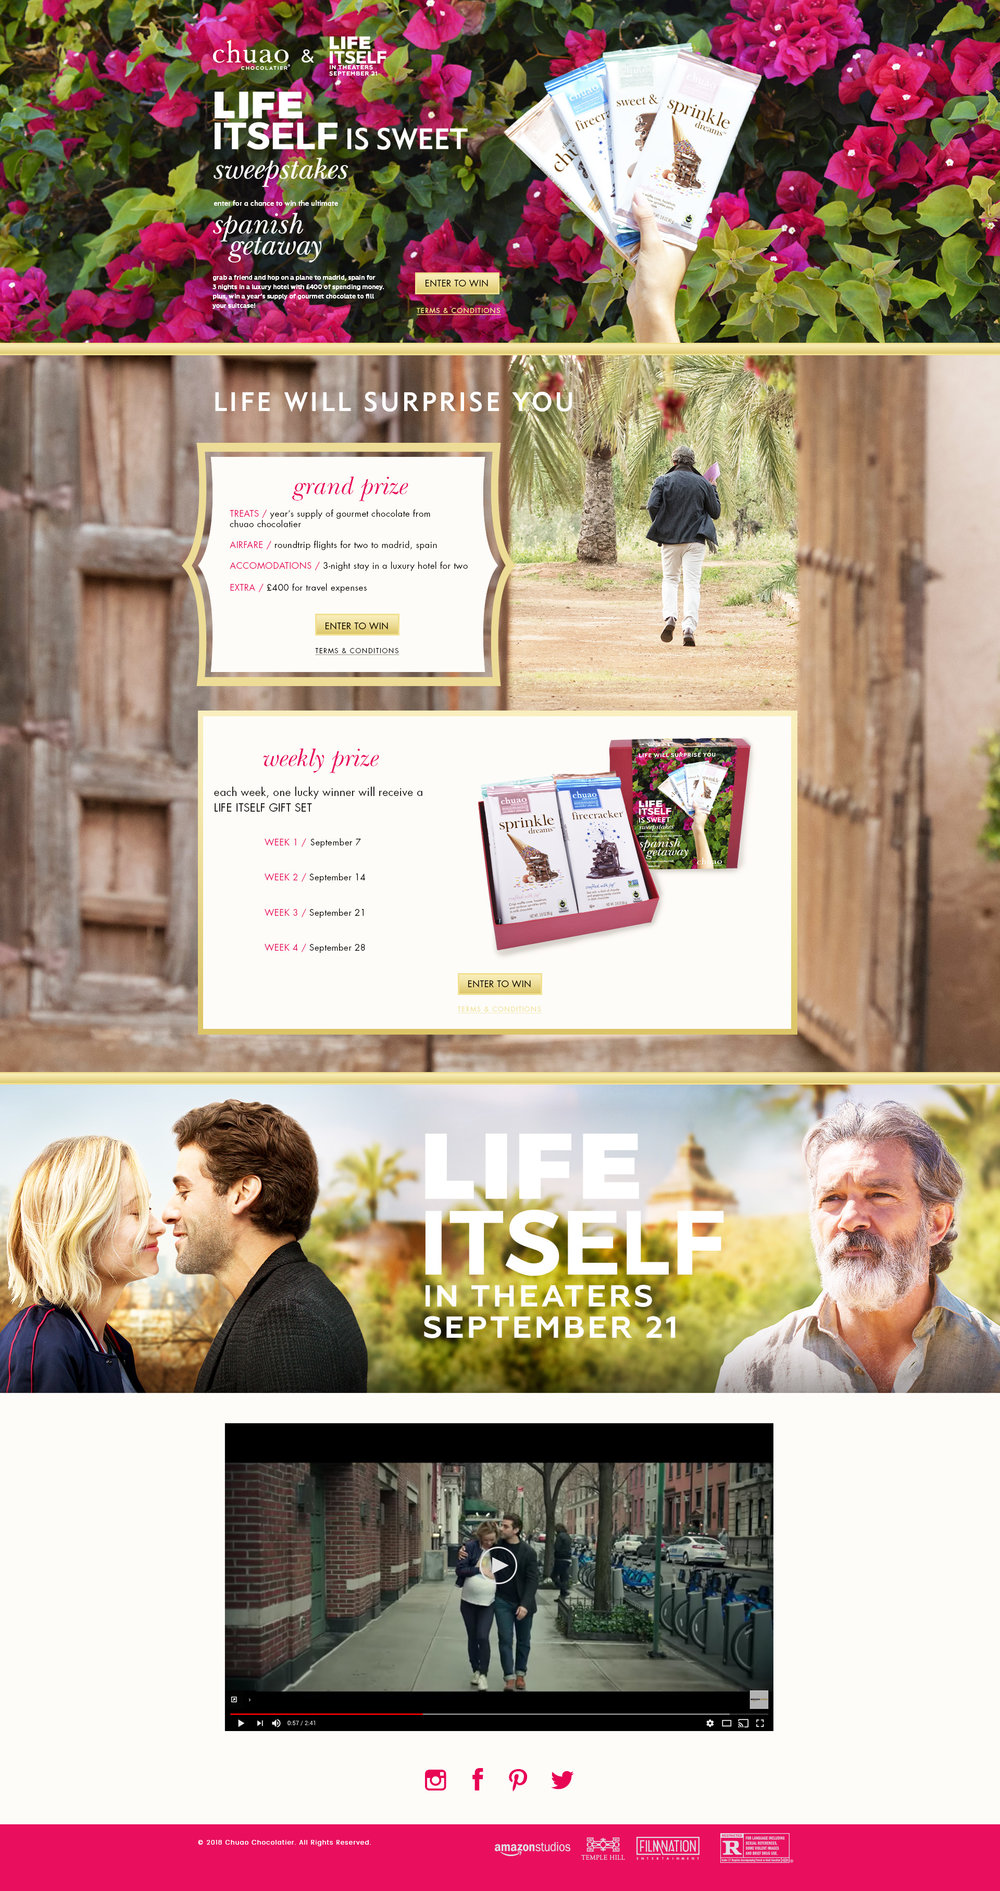 microsite created for our partnership with LIFE ITSEL.